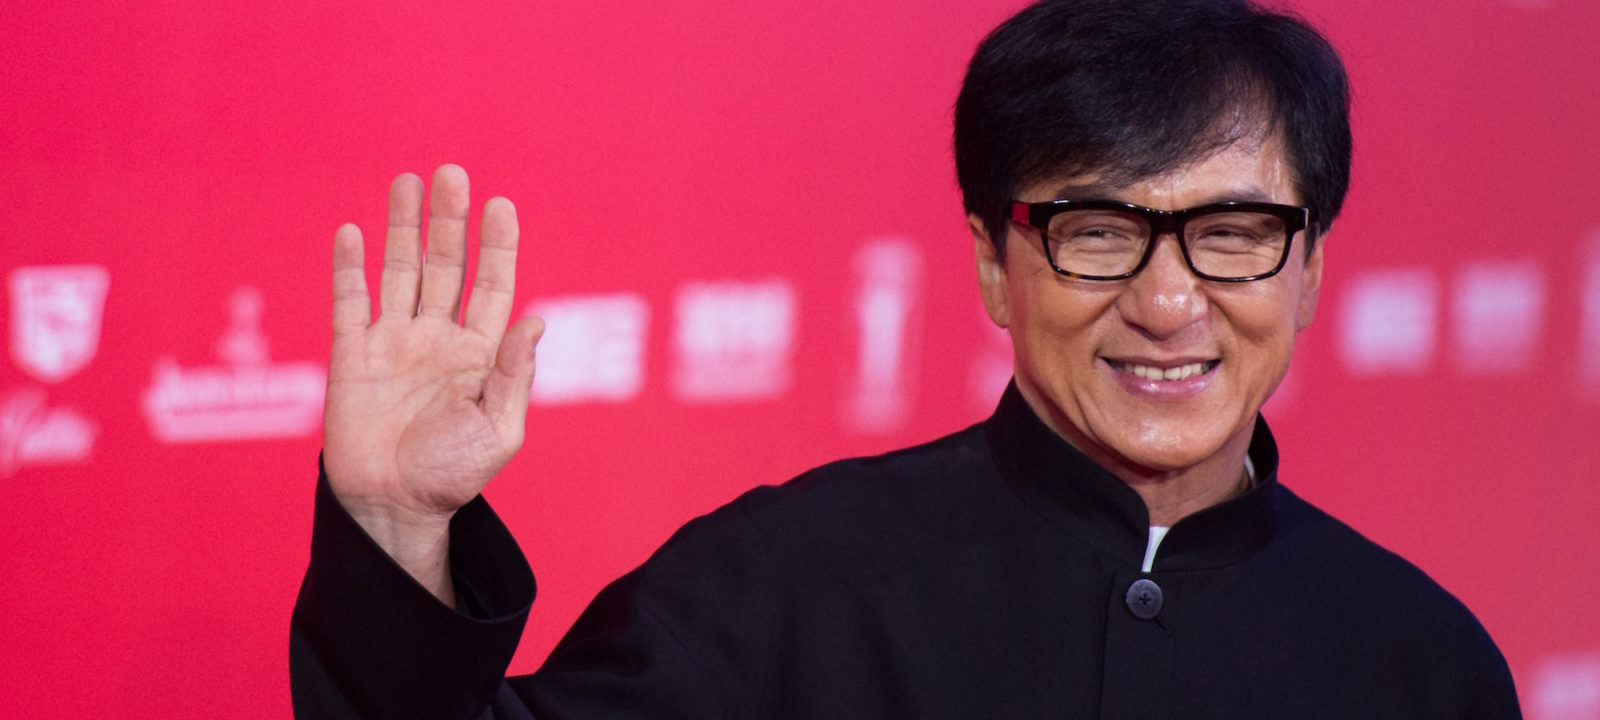 Hong Kong actor Jackie Chan poses on the red carpet during the opening ceremony of the Shanghai International Film Festival (SIFF) in Shanghai on June 13, 2015.  The 18th Shanghai International Film Festival runs from June 13 to 21.